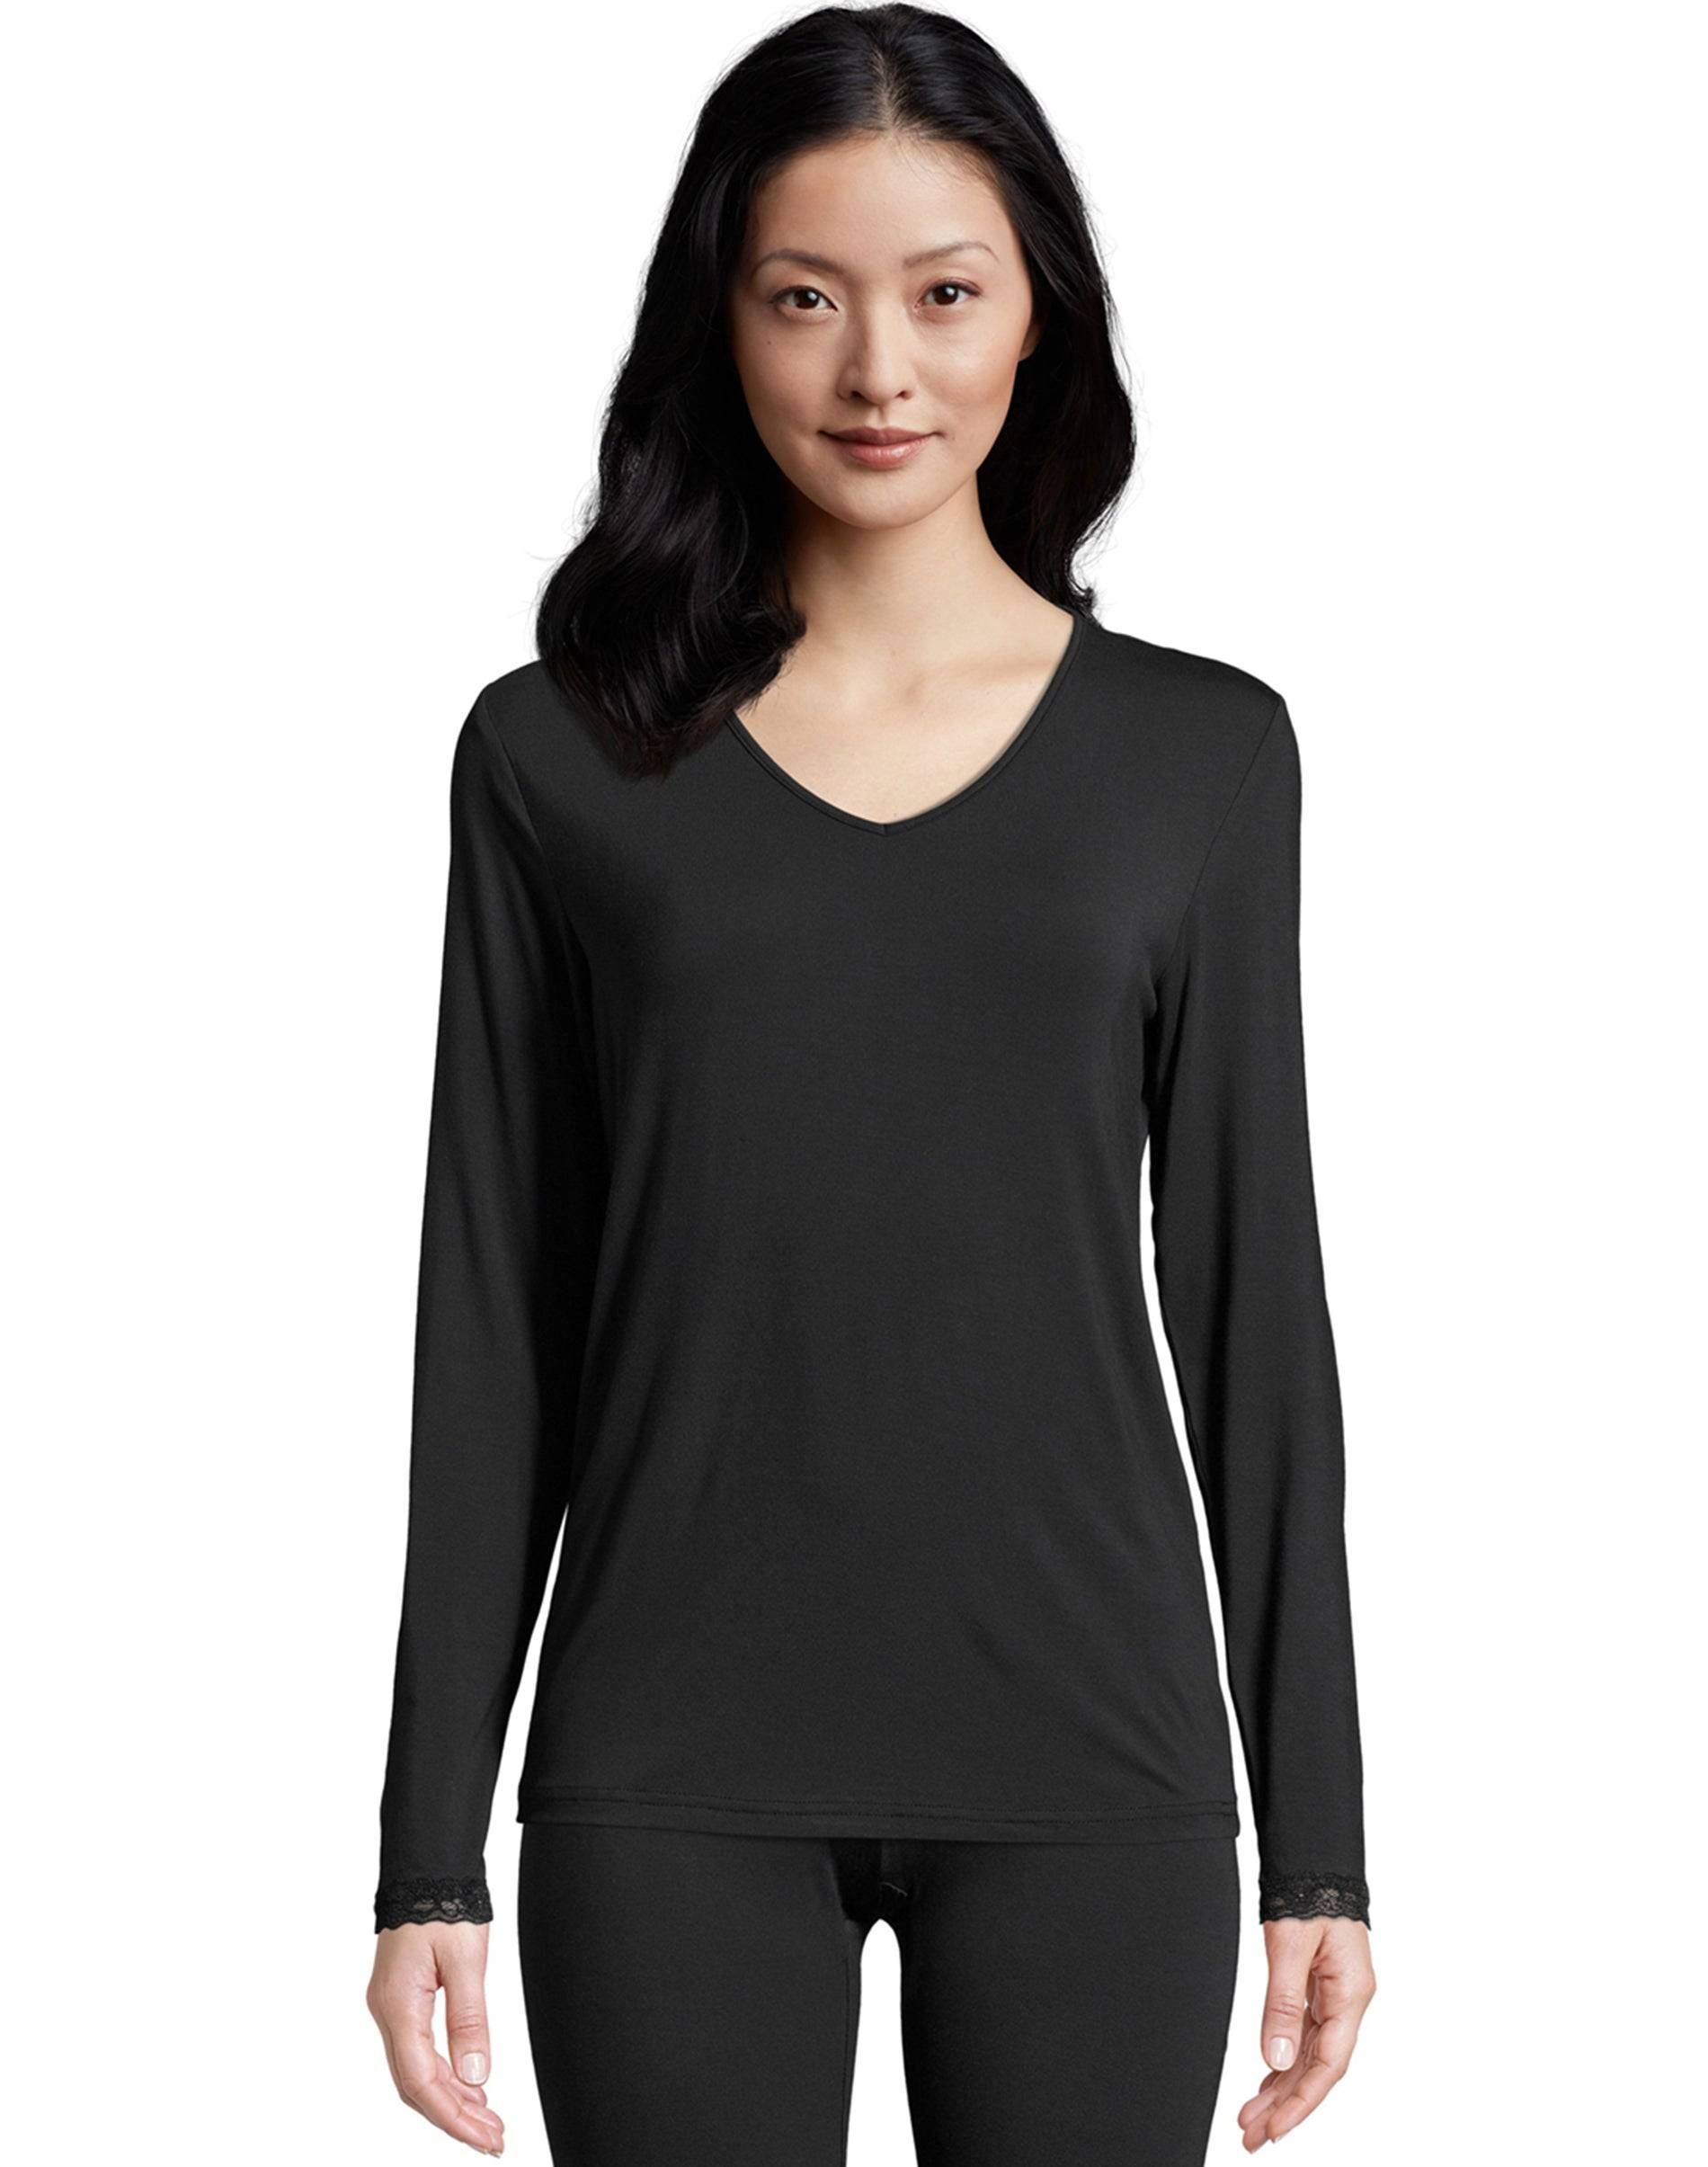 Hanes Women's Comfort Collection Thermal Top Black M